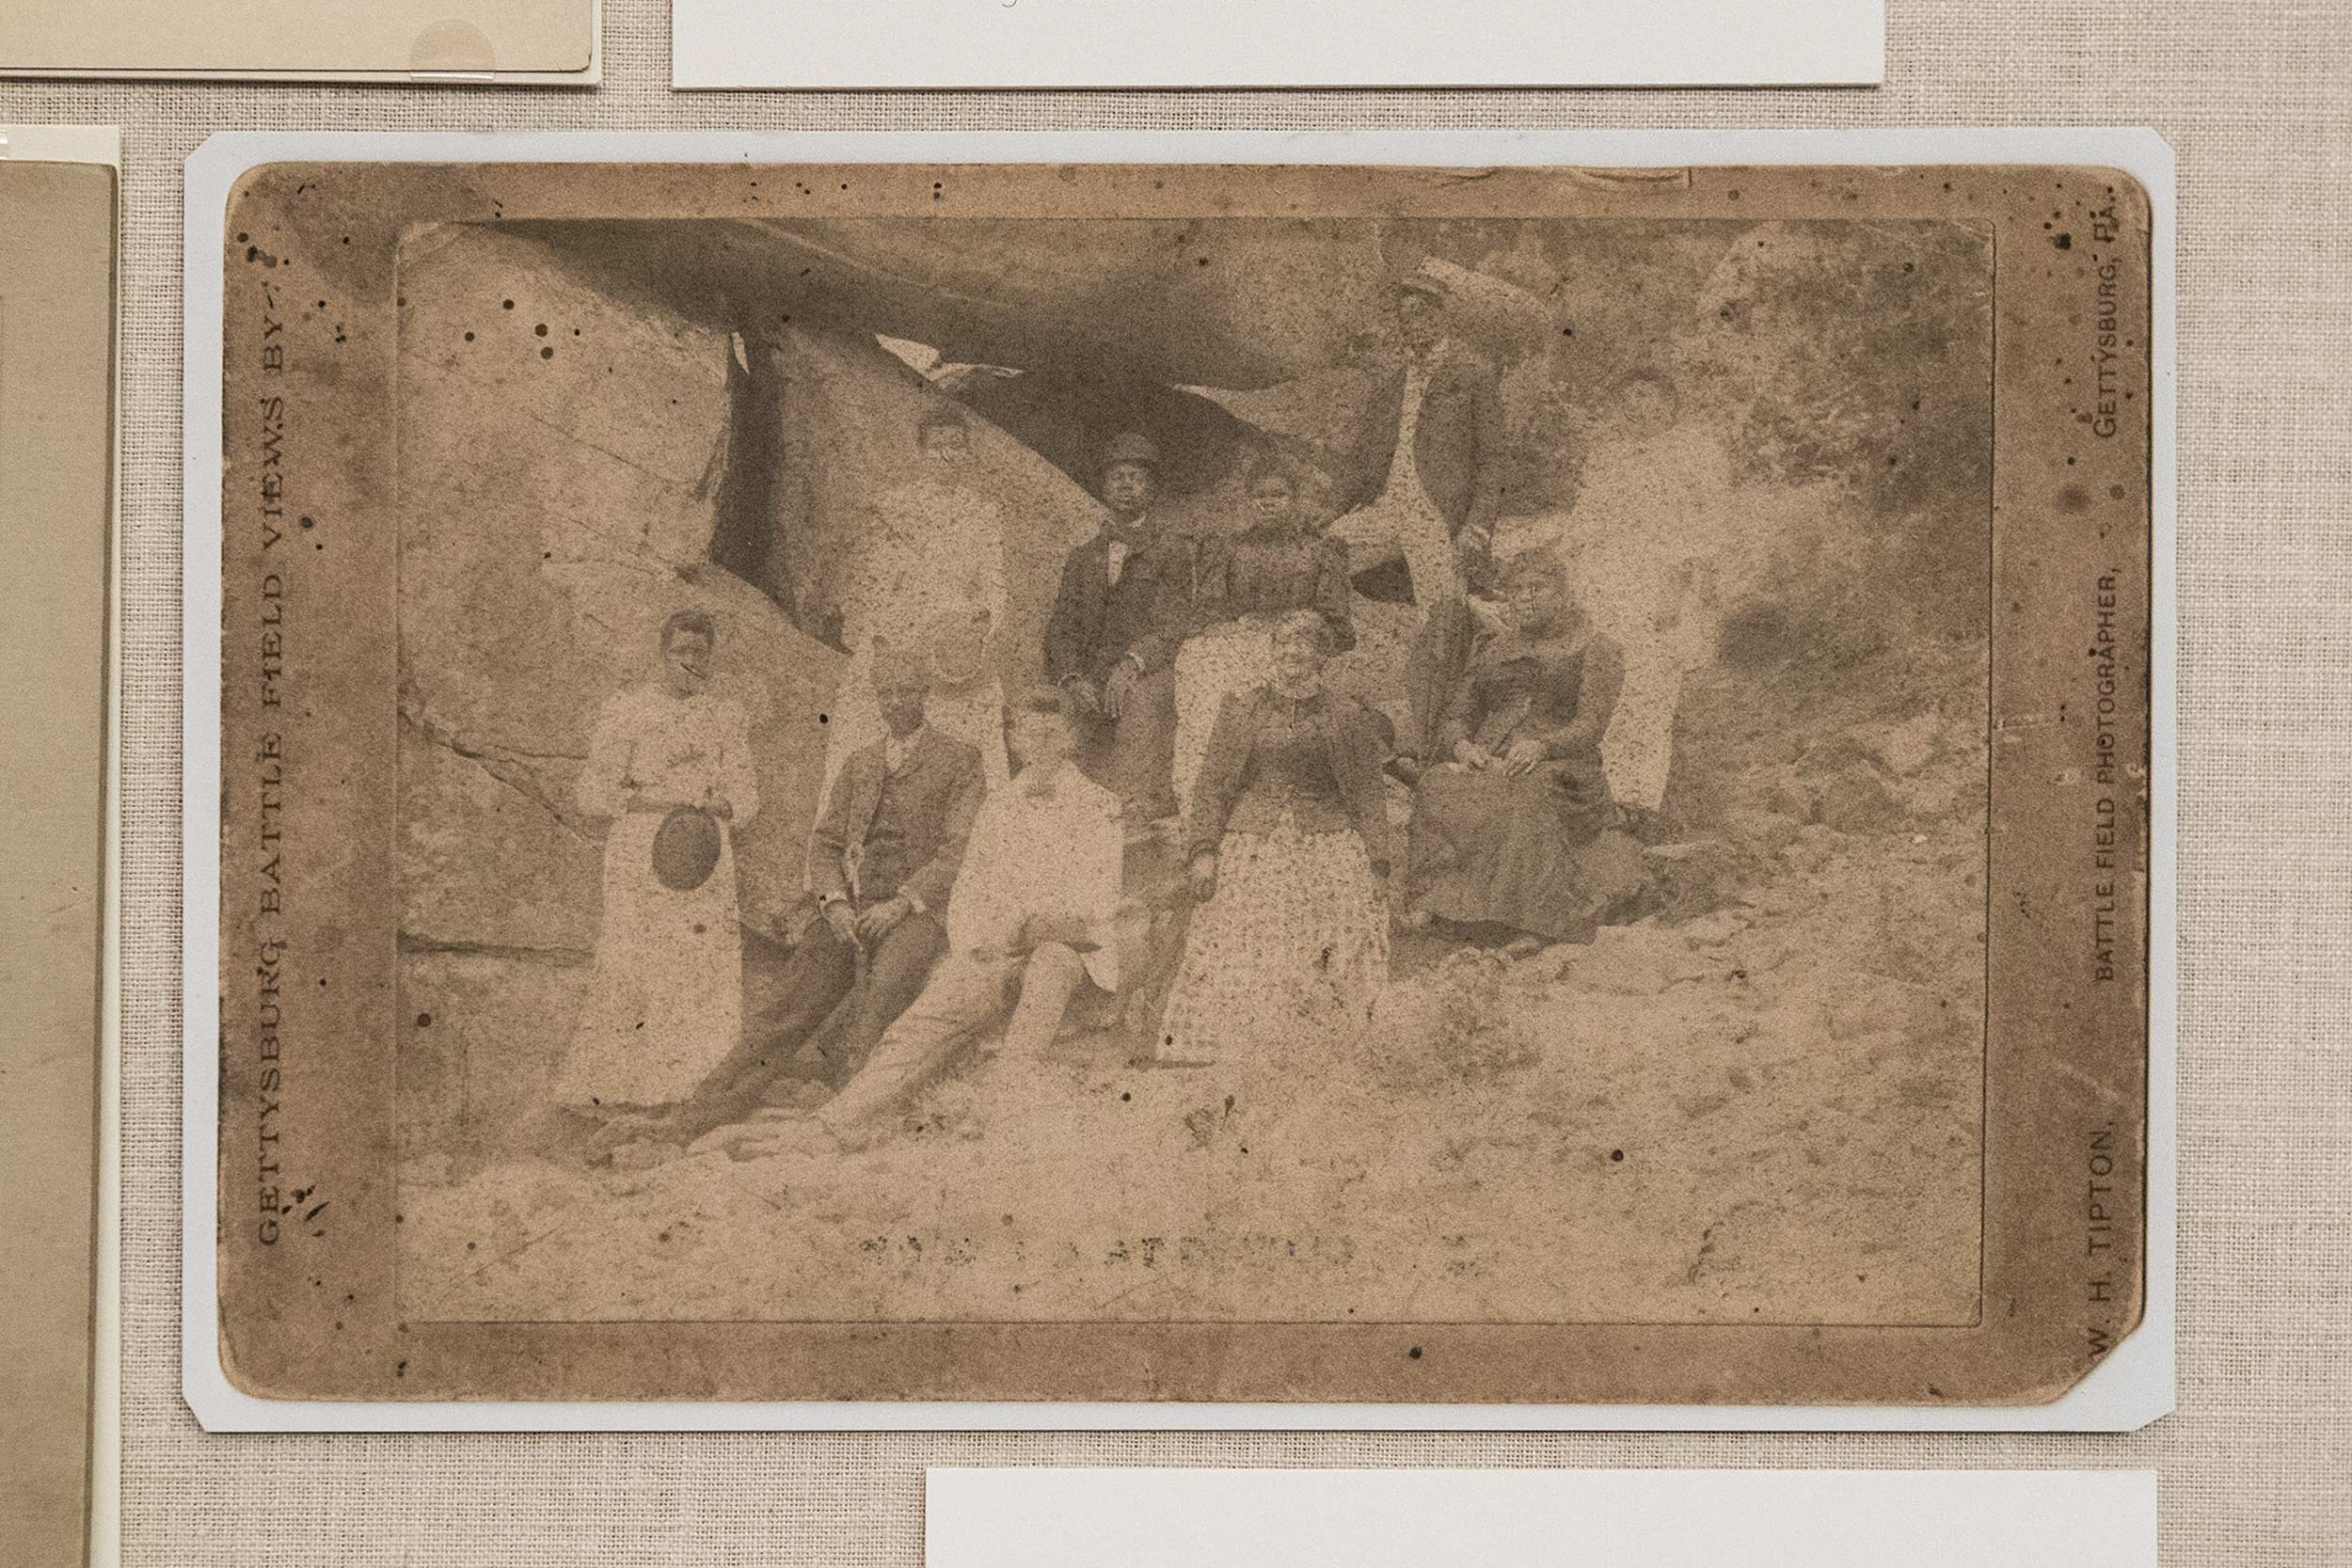 This is a facsimile of an album in print circa 1890s of a group of black tourists visiting Gettysburg Battlefield.